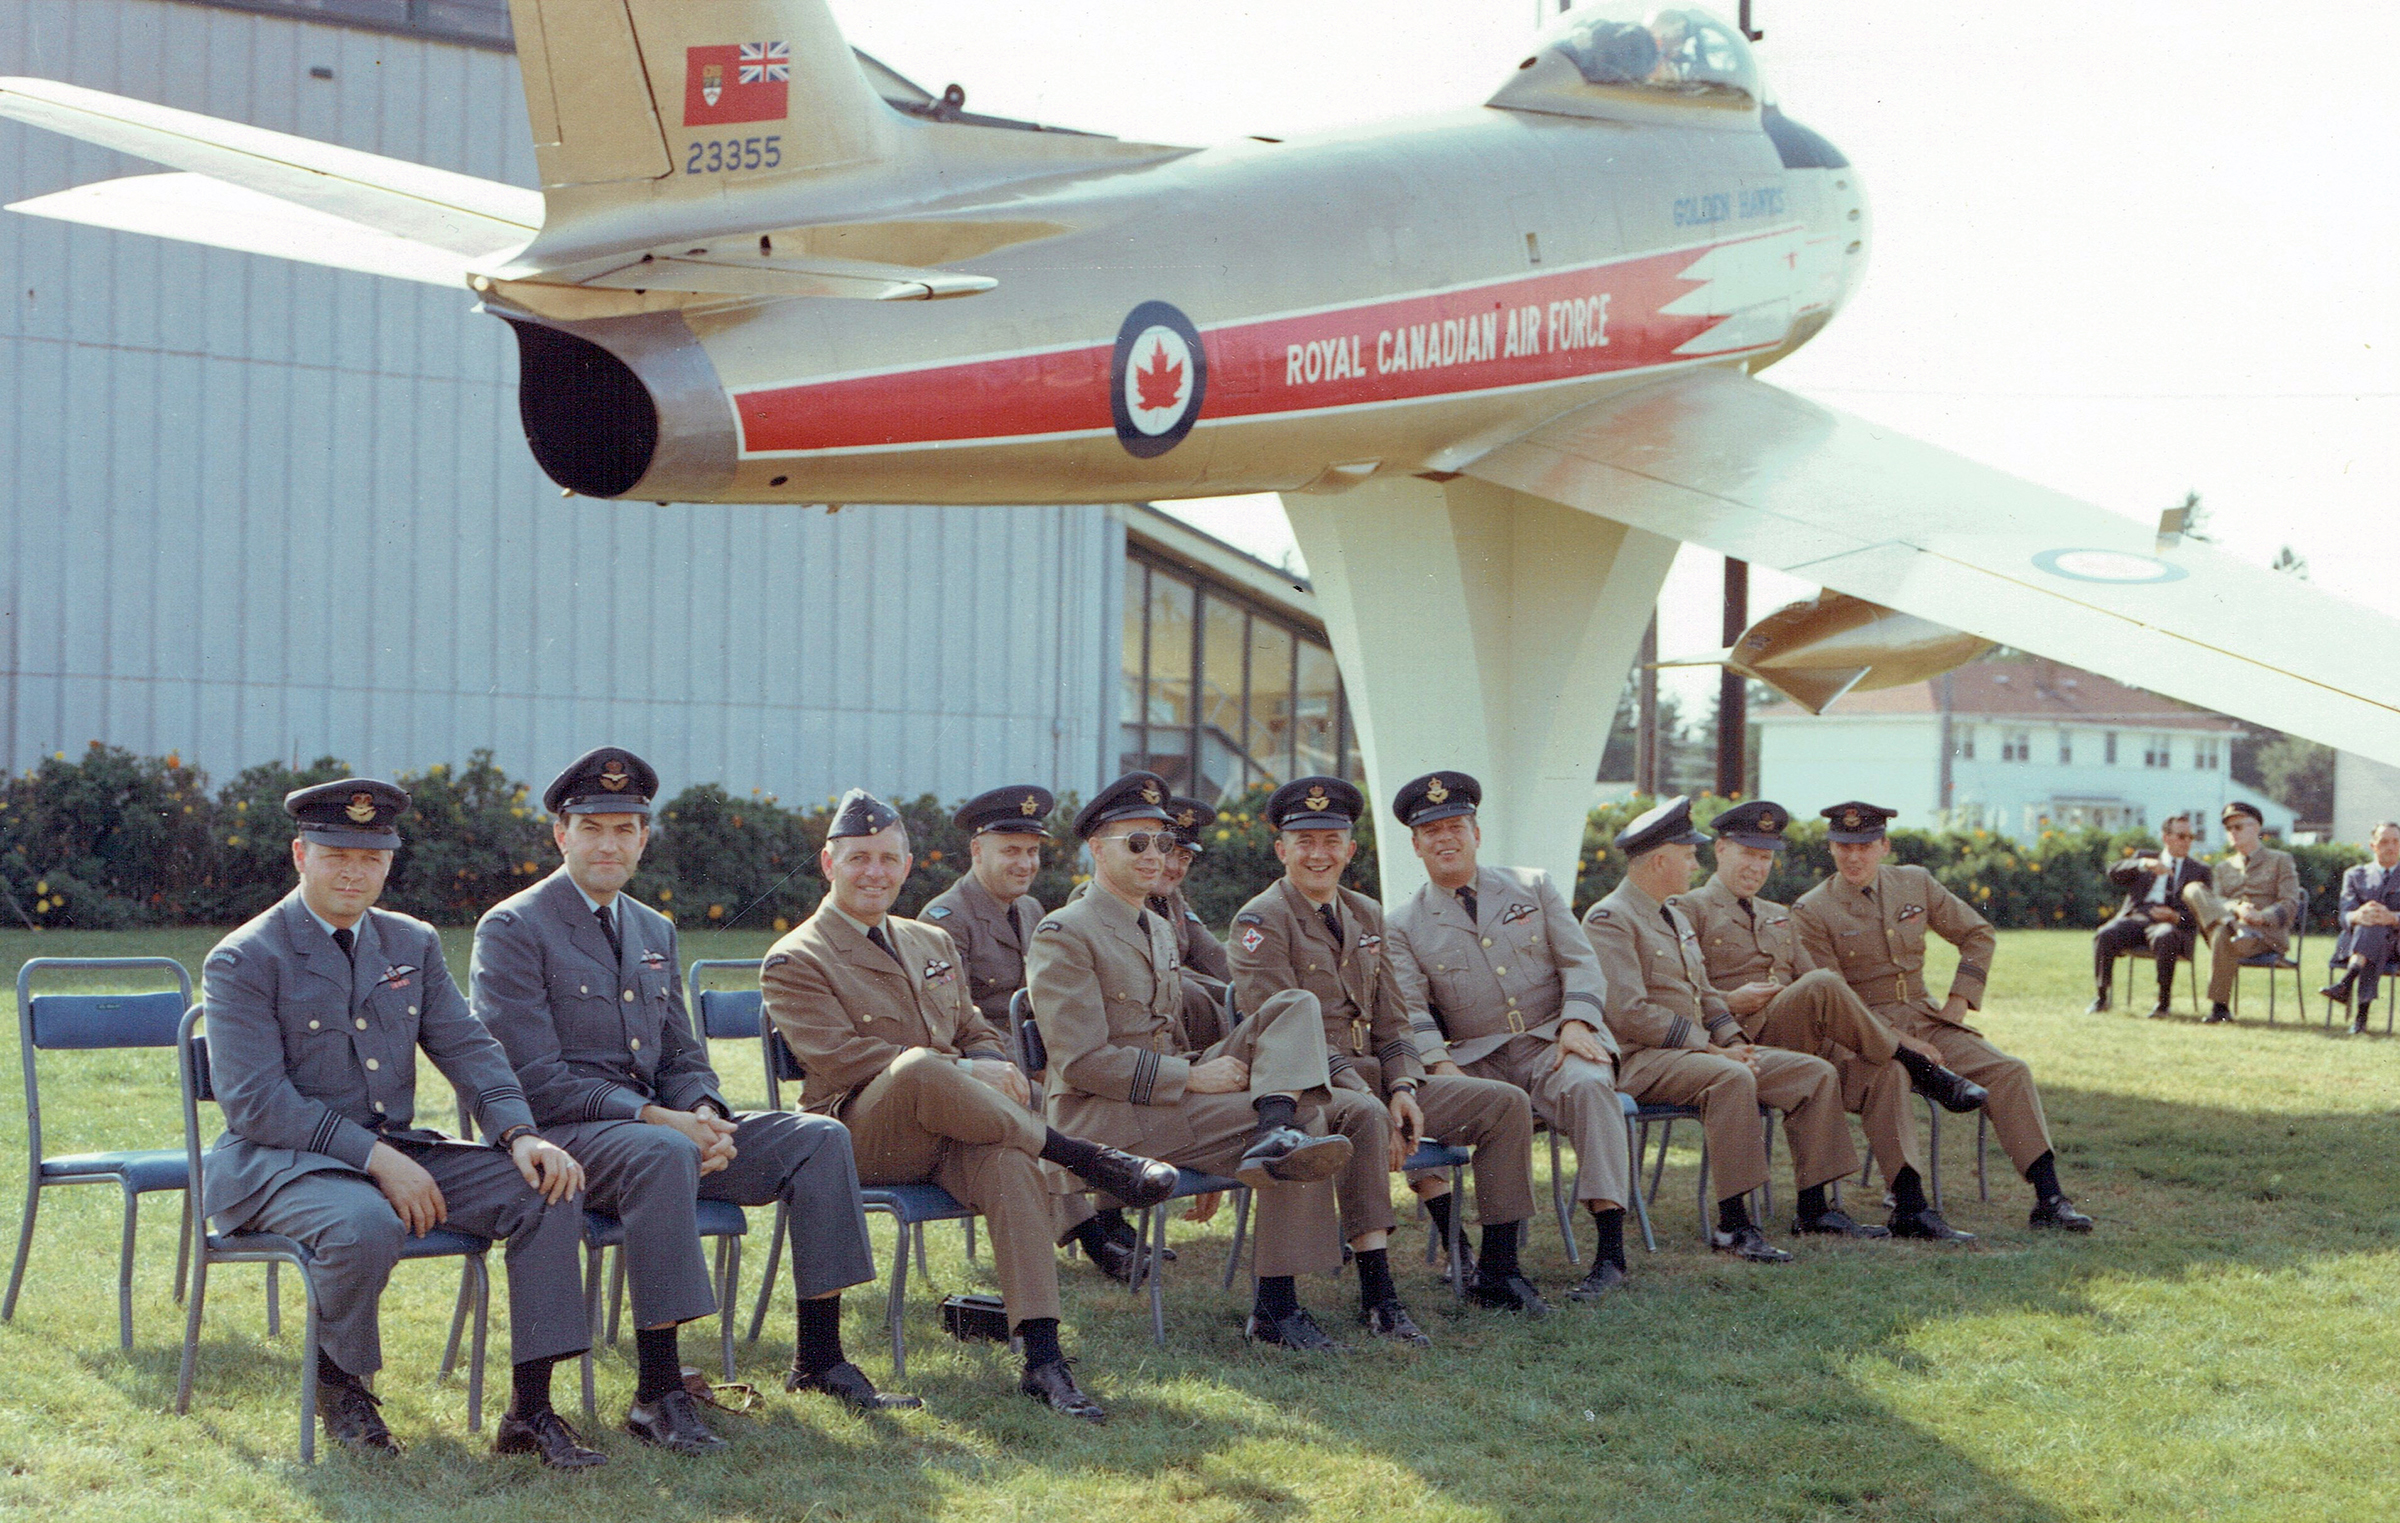 The first Golden Hawks Appreciation Day was held September 16, 1967, at RCAF Station Chatham, New Brunswick. Seated, left to right, are Bill Stewart, Ed Rozdeba, Lloyd Hubbard, Bob Dobson, Jim McCombe, JT Price, Ray Archer, Alf McDonald and Ed McKeogh (the only person from this photo to attend the 2017 reunion). In the back row are Grant McEathron (left) and Norm Gray. The Sabre was unveiled that same day. After the Chatham base closed in 1996, the aircraft was transferred to the Atlantic Canada Aviation Museum, near the Stanfield International Airport in Halifax, Nova Scotia, where it still bears the Golden Hawks livery, although this particular aircraft did not actually fly with the team. PHOTO: Corporal R. Johnson